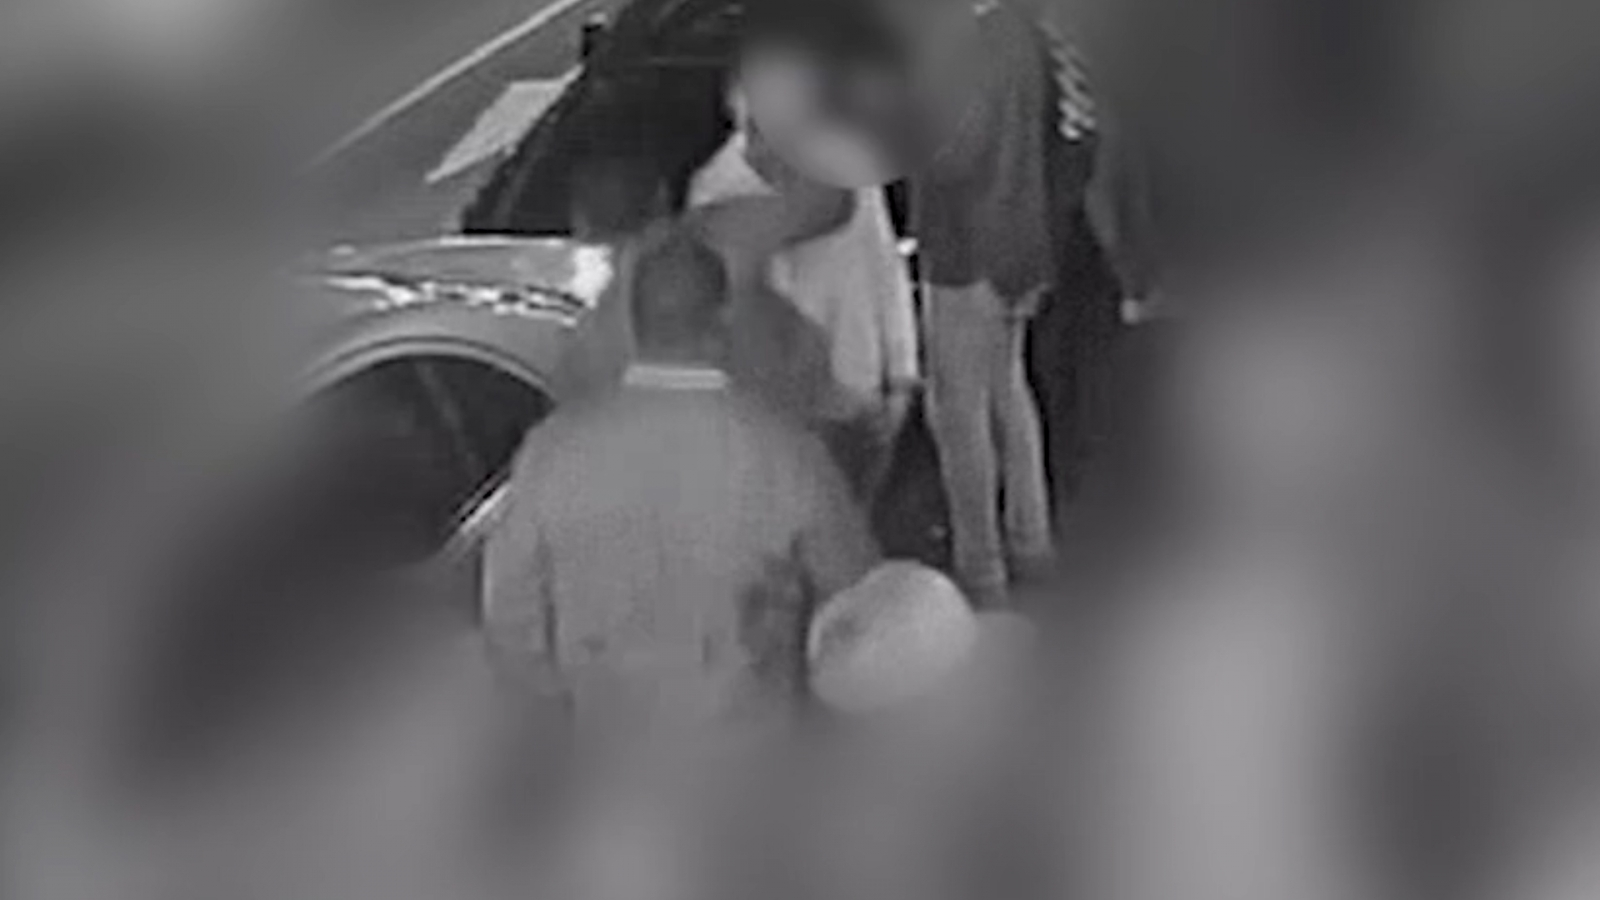 CCTV shows vicious unprovoked attack in London